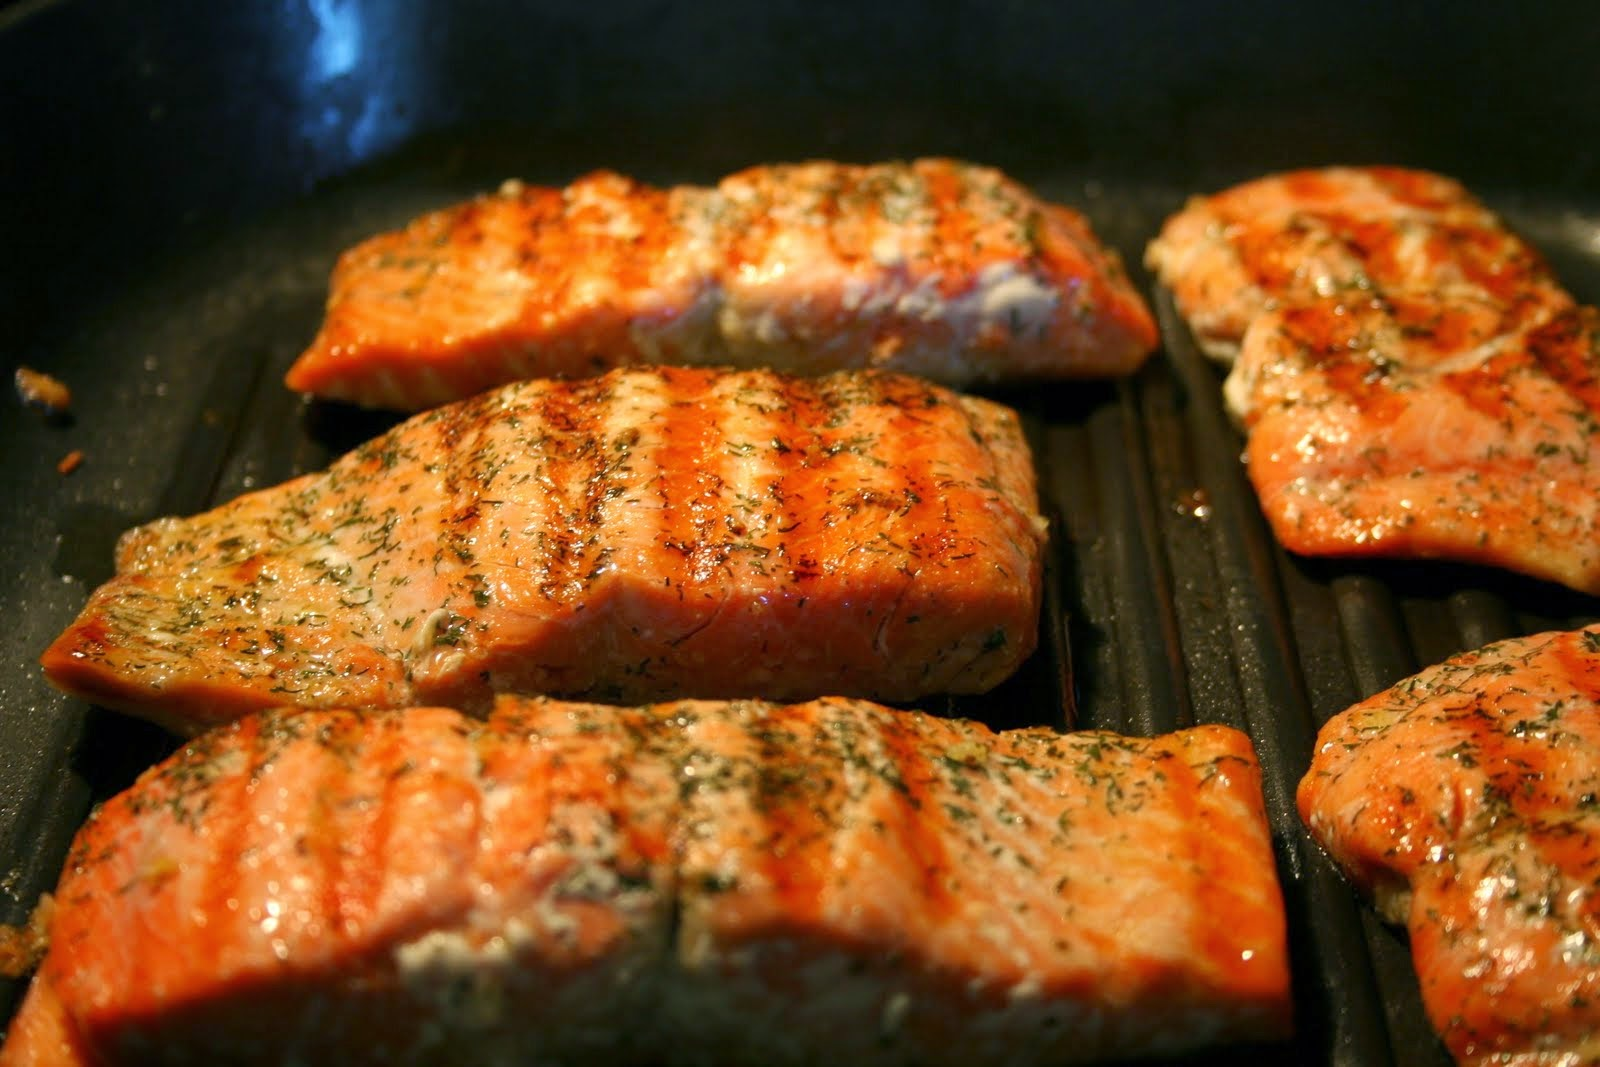 05-16-10-grilled-salmon-green-beans-and-quinoa3.jpg